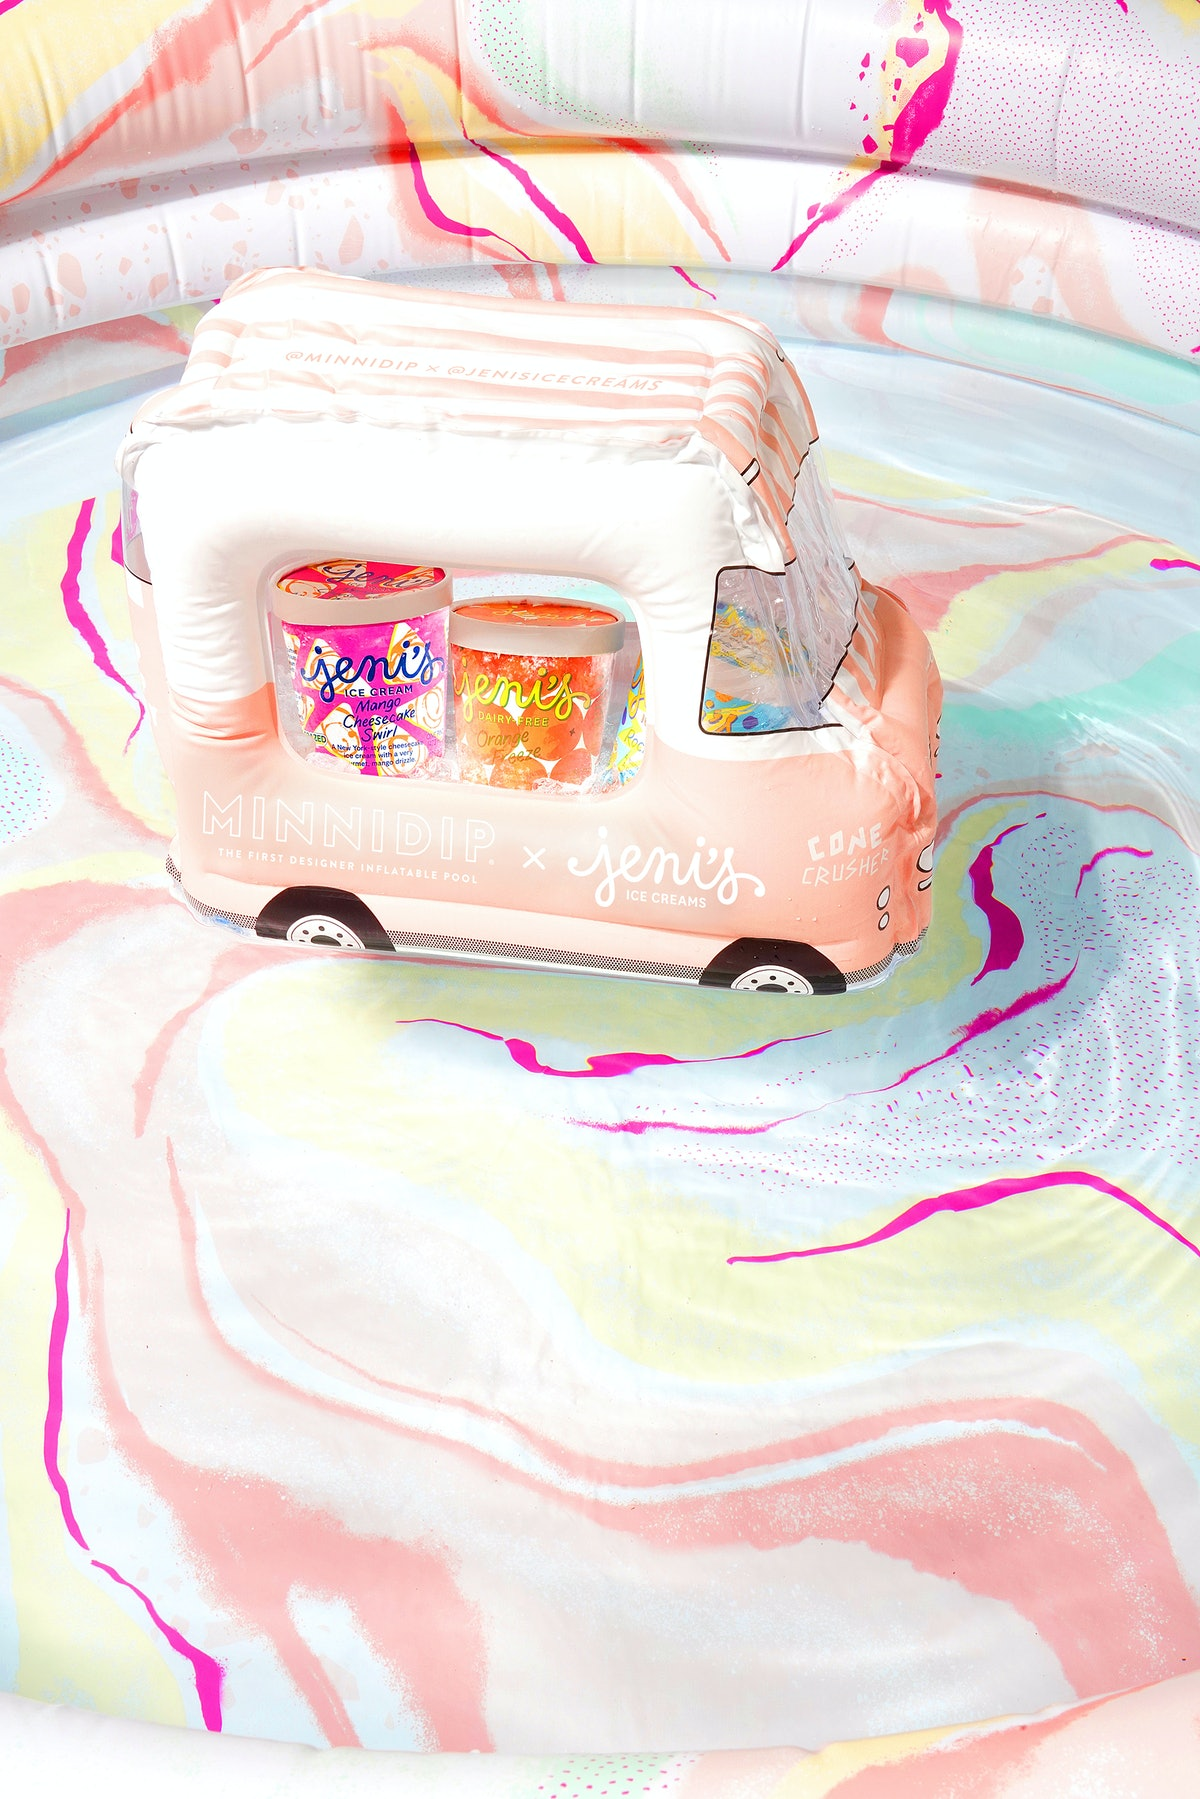 Minnidip and Jeni's released an inflatable pool and float collection.